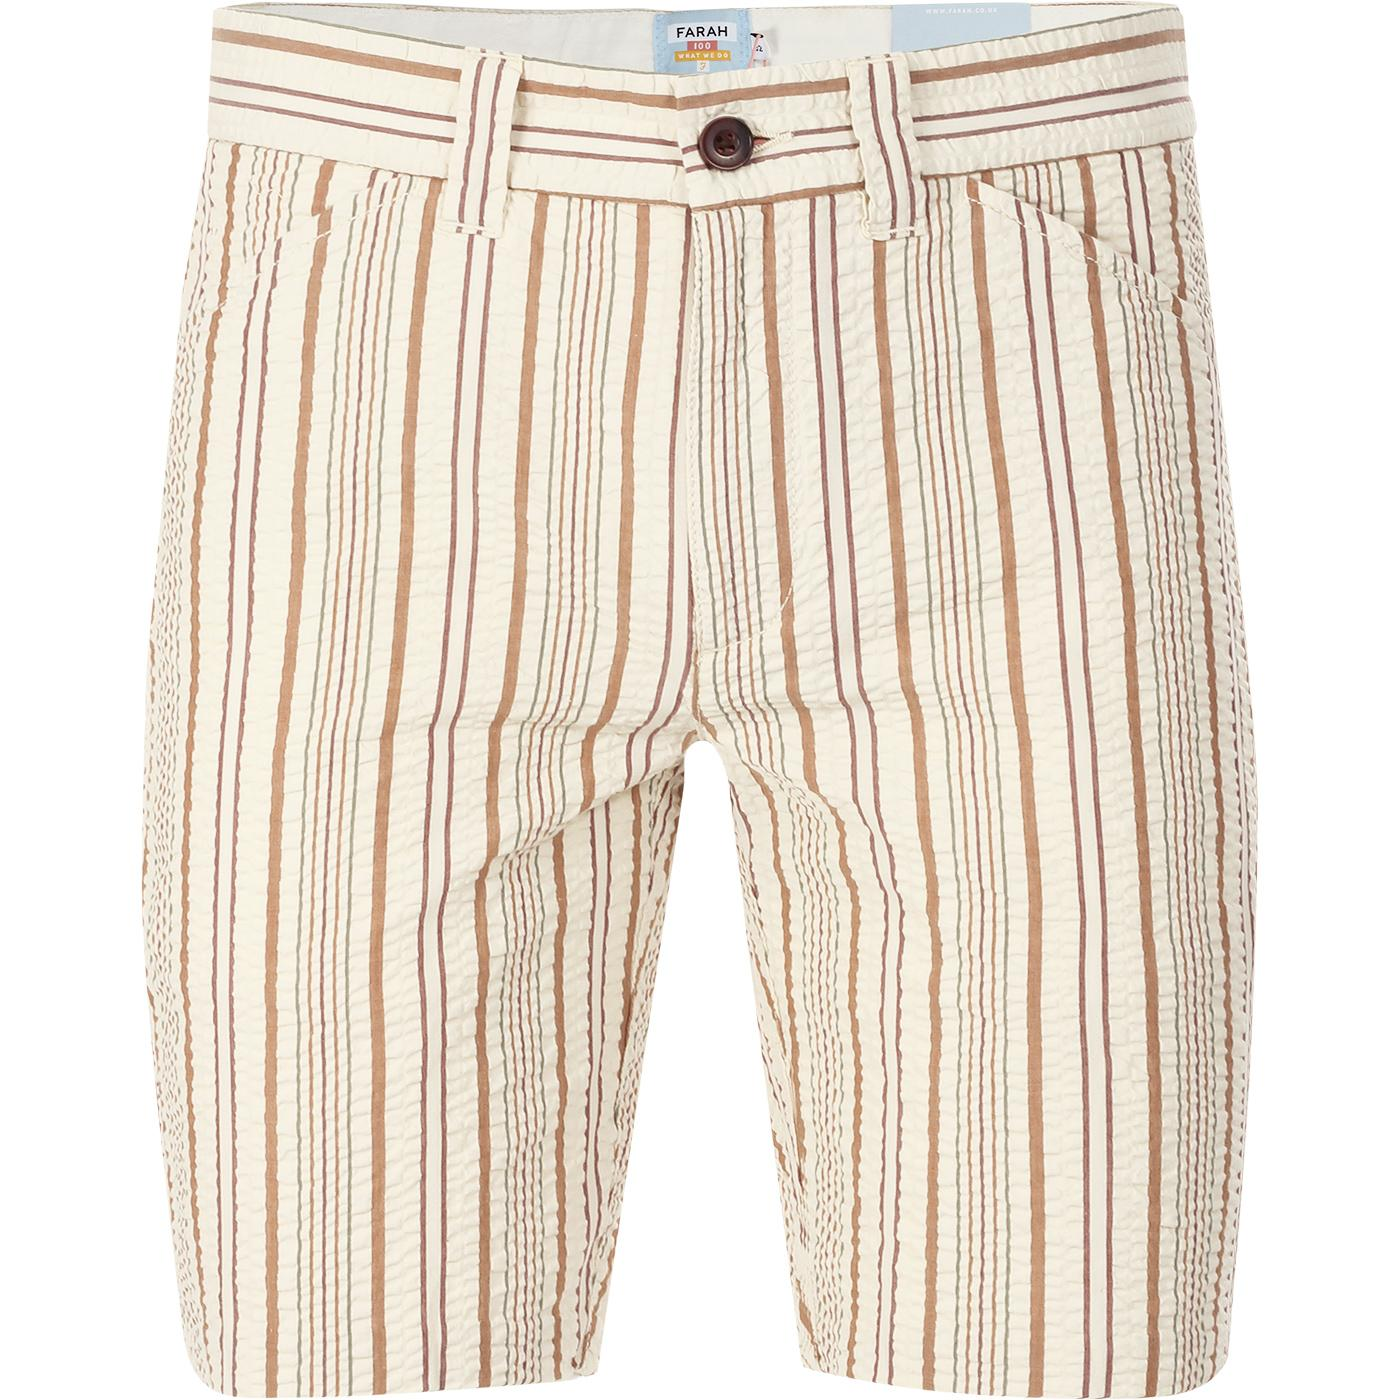 Hawk FARAH 100 Retro 60s Seersucker Stripe Shorts